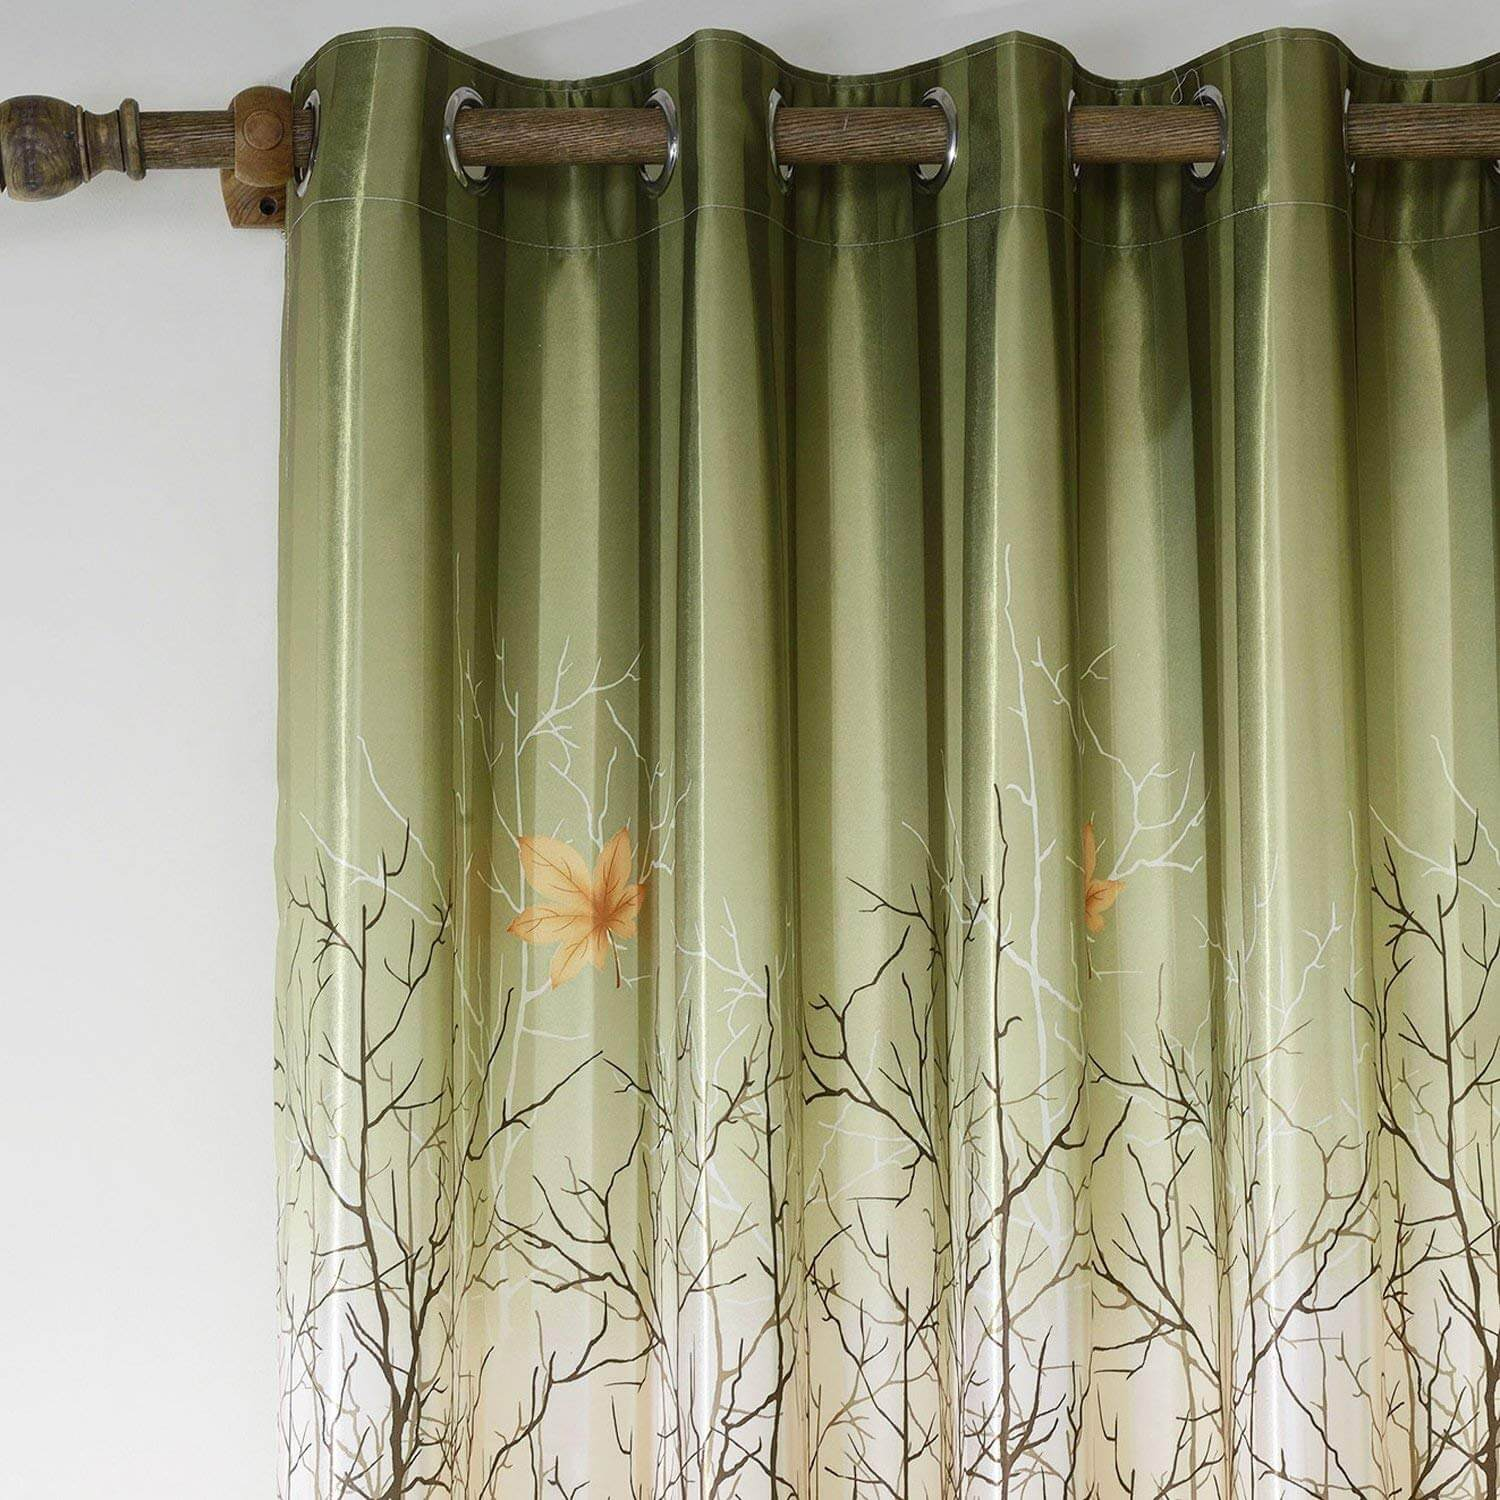 Green/Orange Maple Leaf Tree Curtains and Drapes for Living Room Set of 2 Panels - Anady Top Space Design